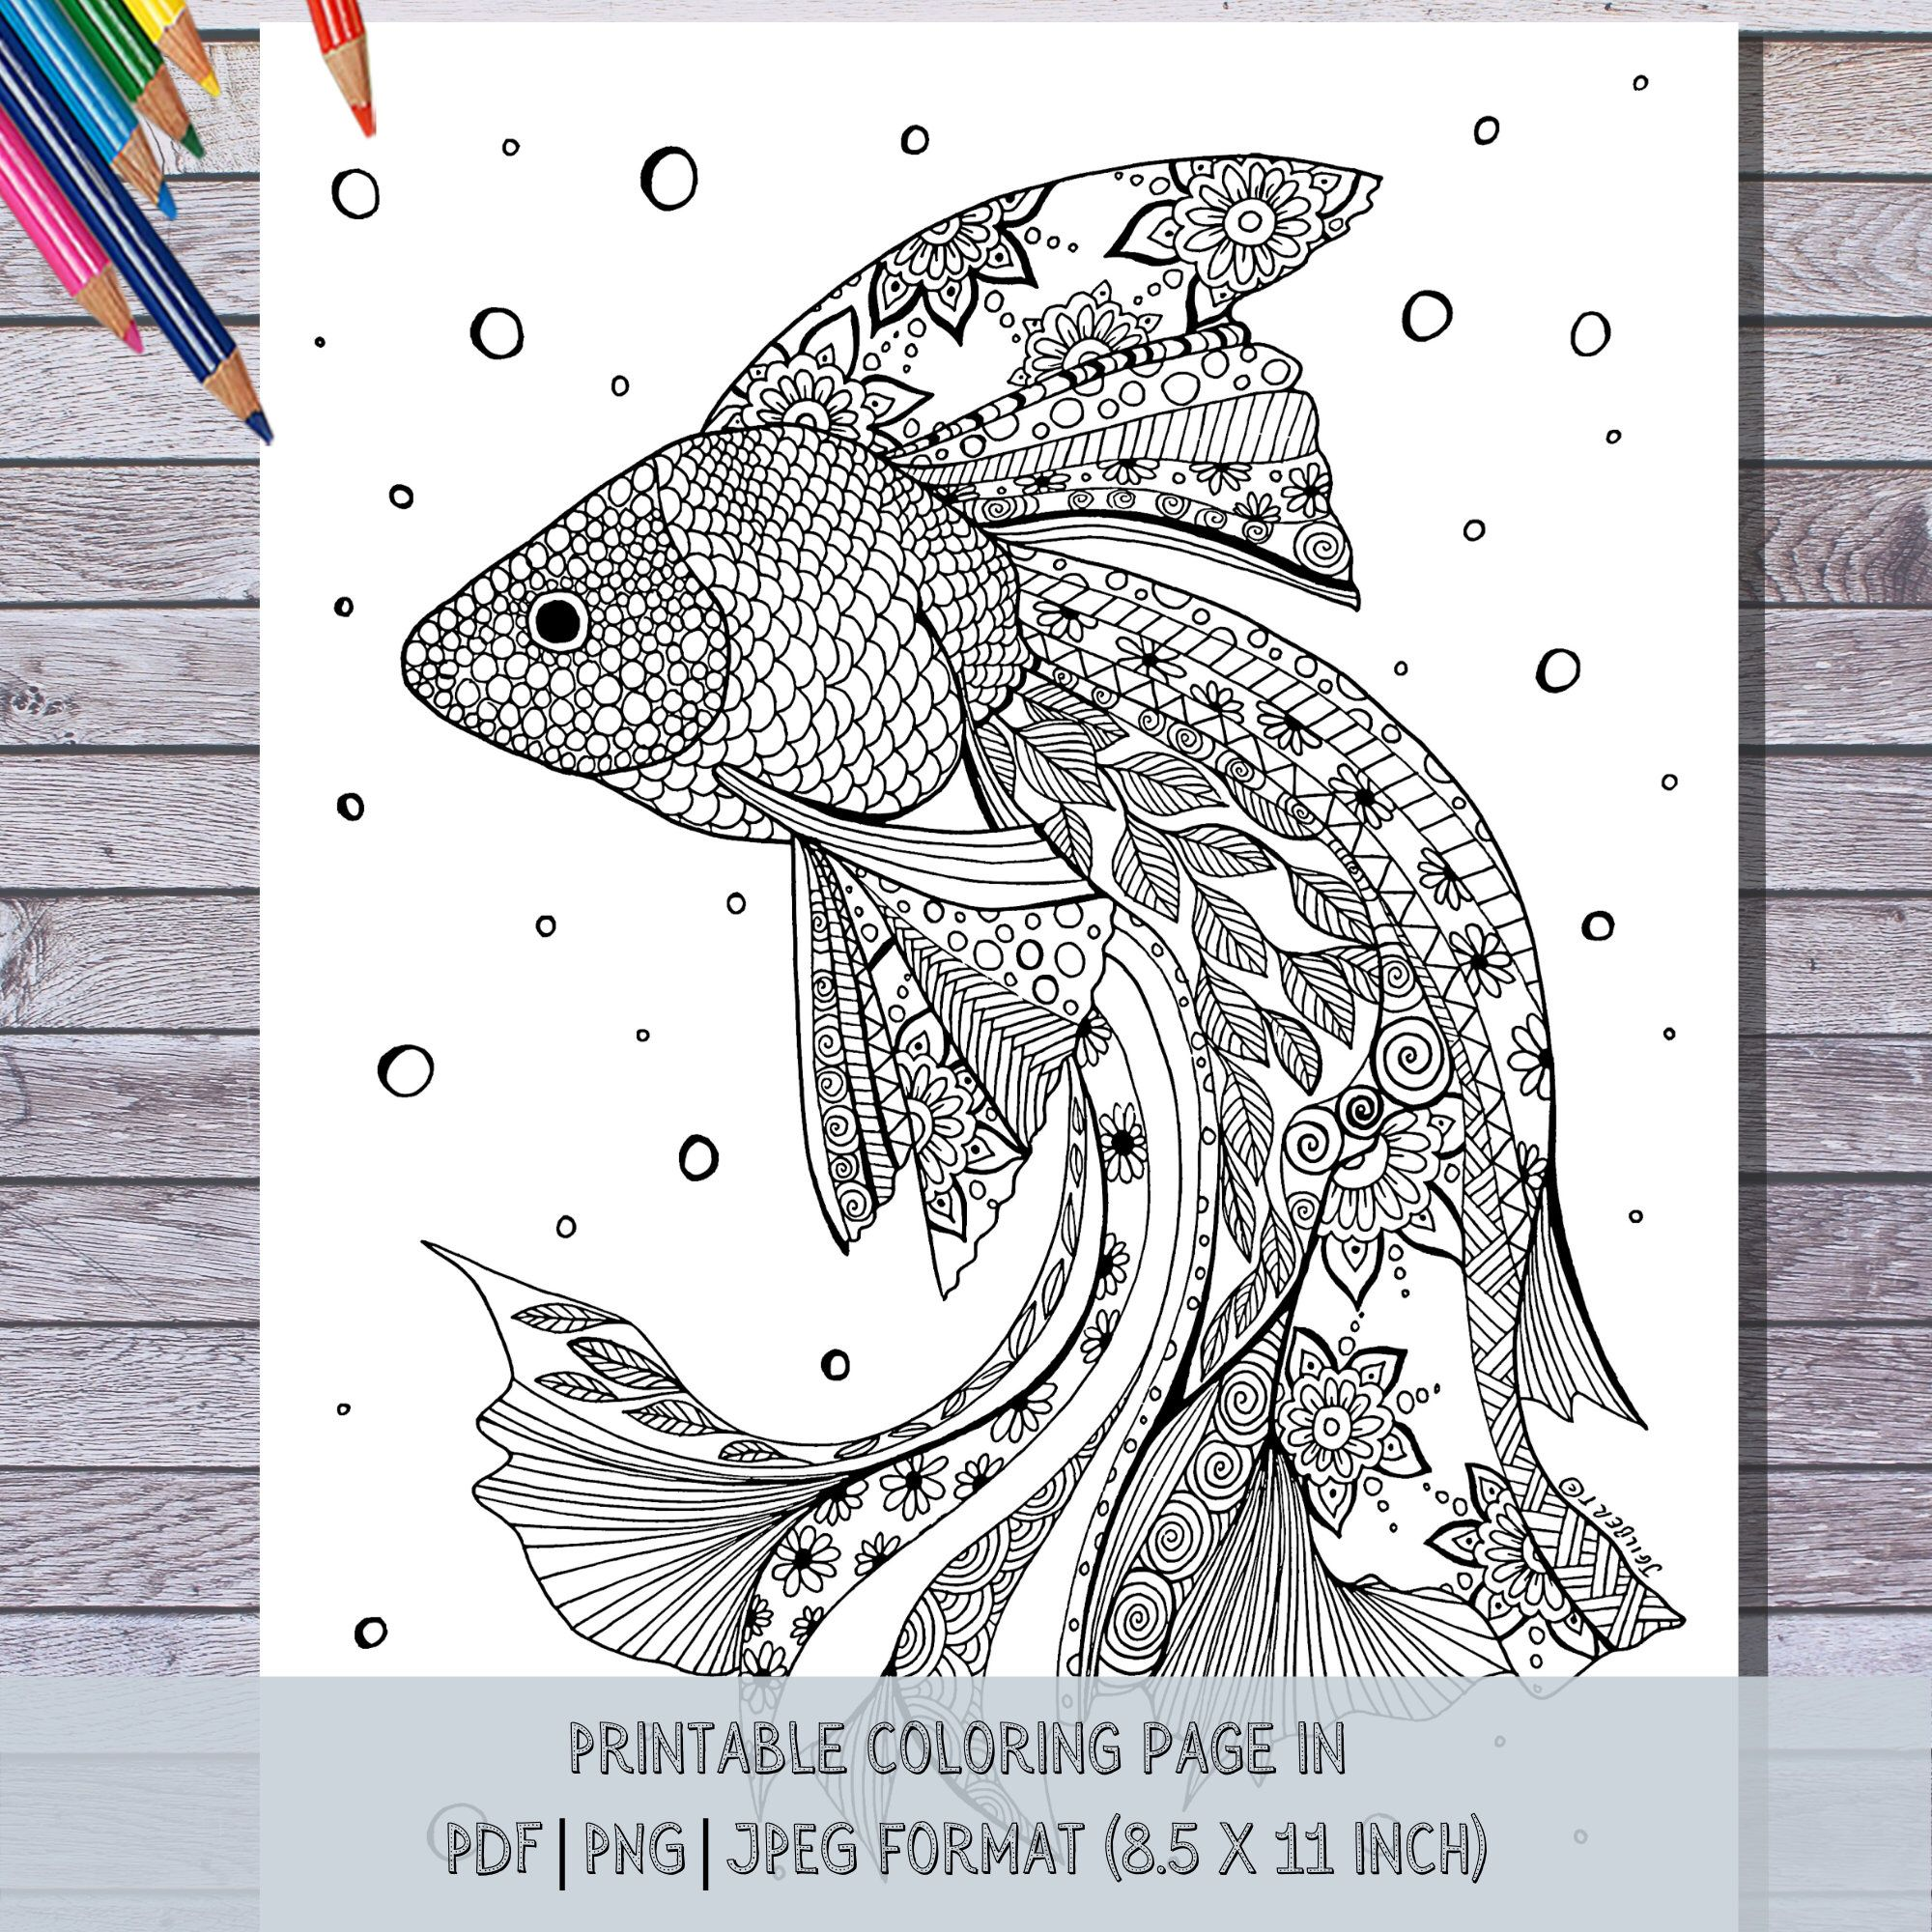 Printable Fish Coloring Page Instant Digital Pdf Download Etsy Fish Coloring Page Hand Illustration Coloring Pages